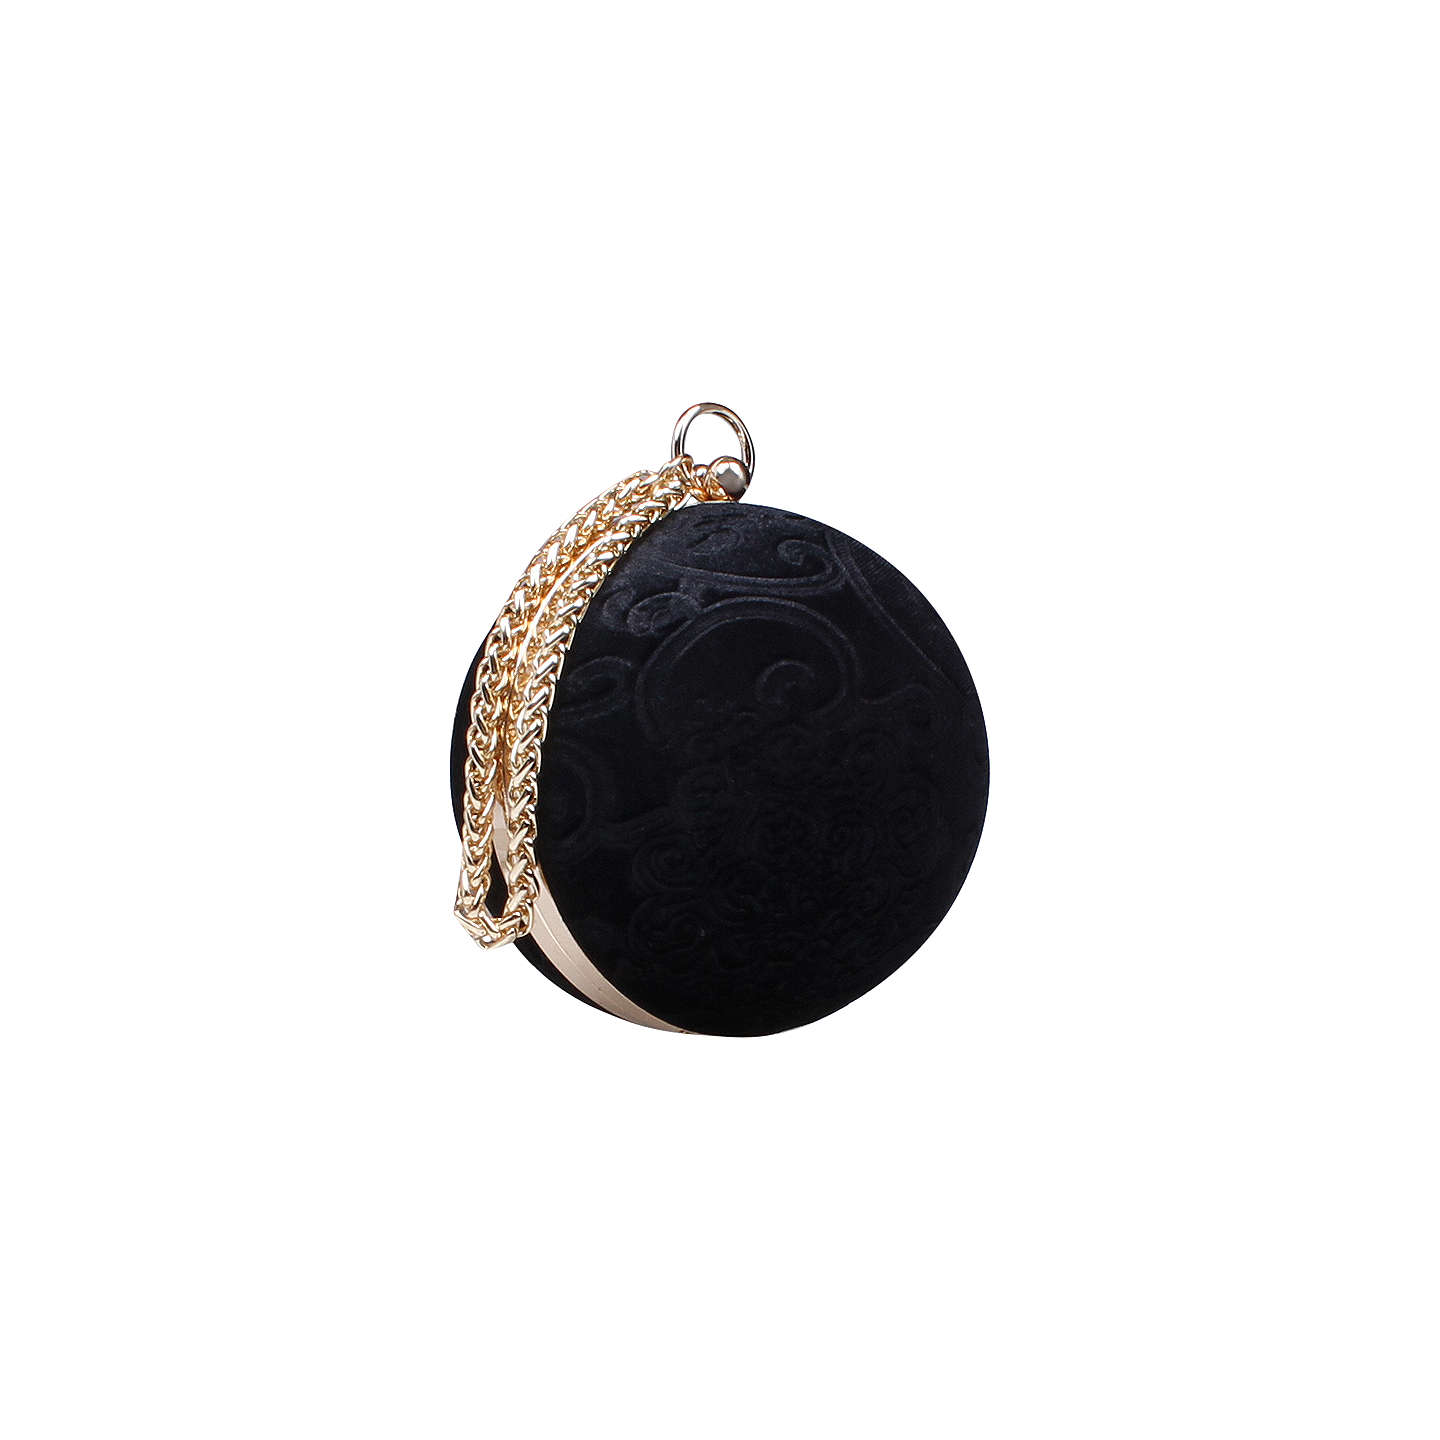 BuyCarvela Guide Circular Clutch Bag, Black Online at johnlewis.com